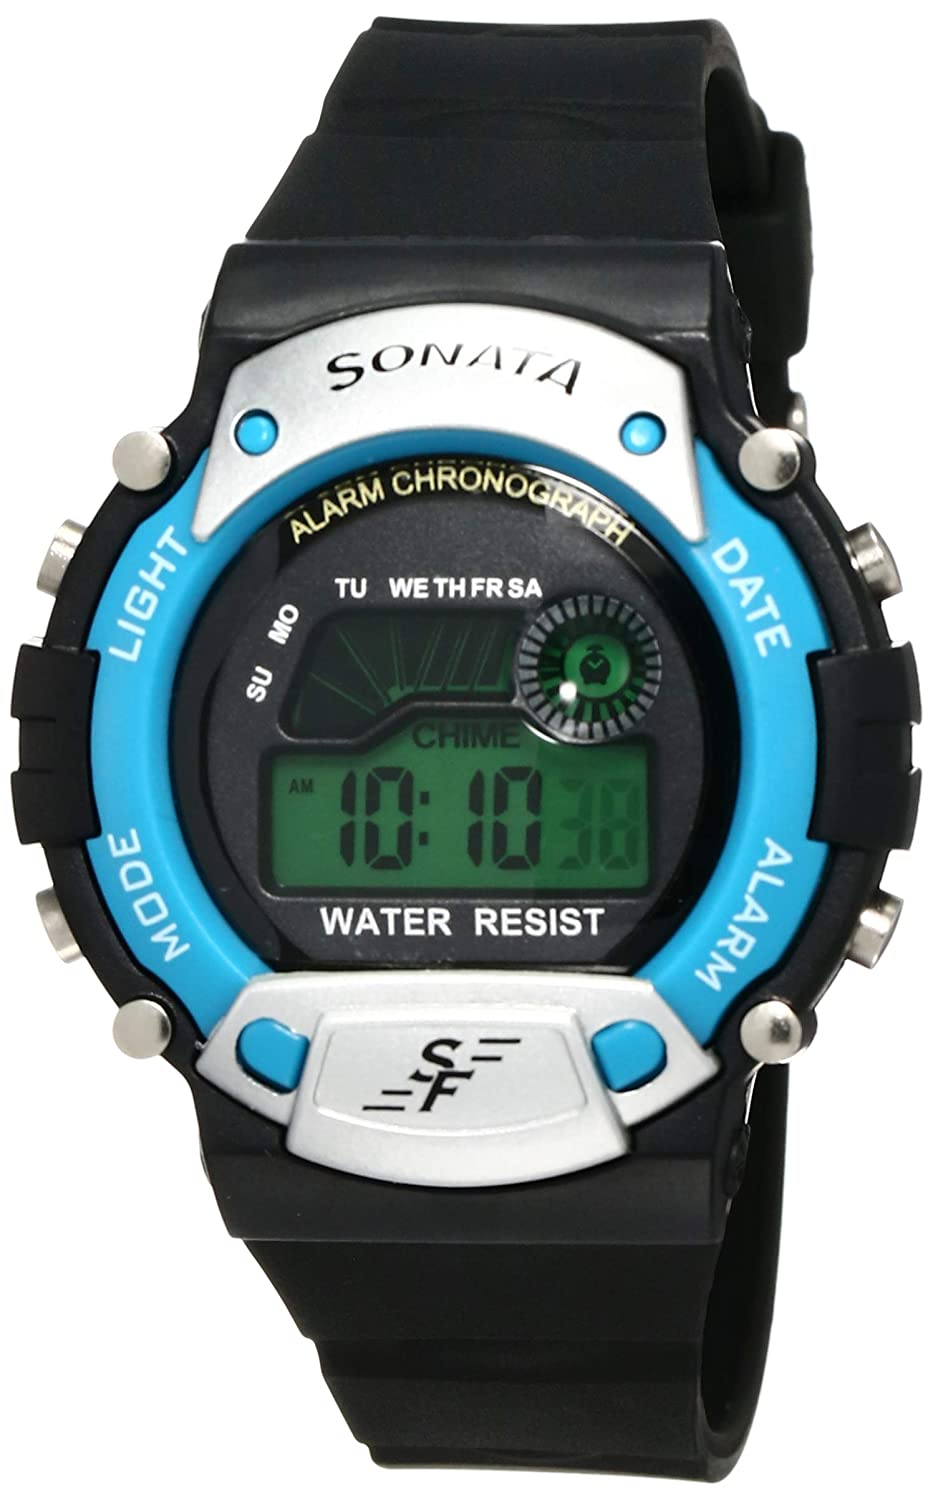 Sonata Best Watches For Teenage Boys in India